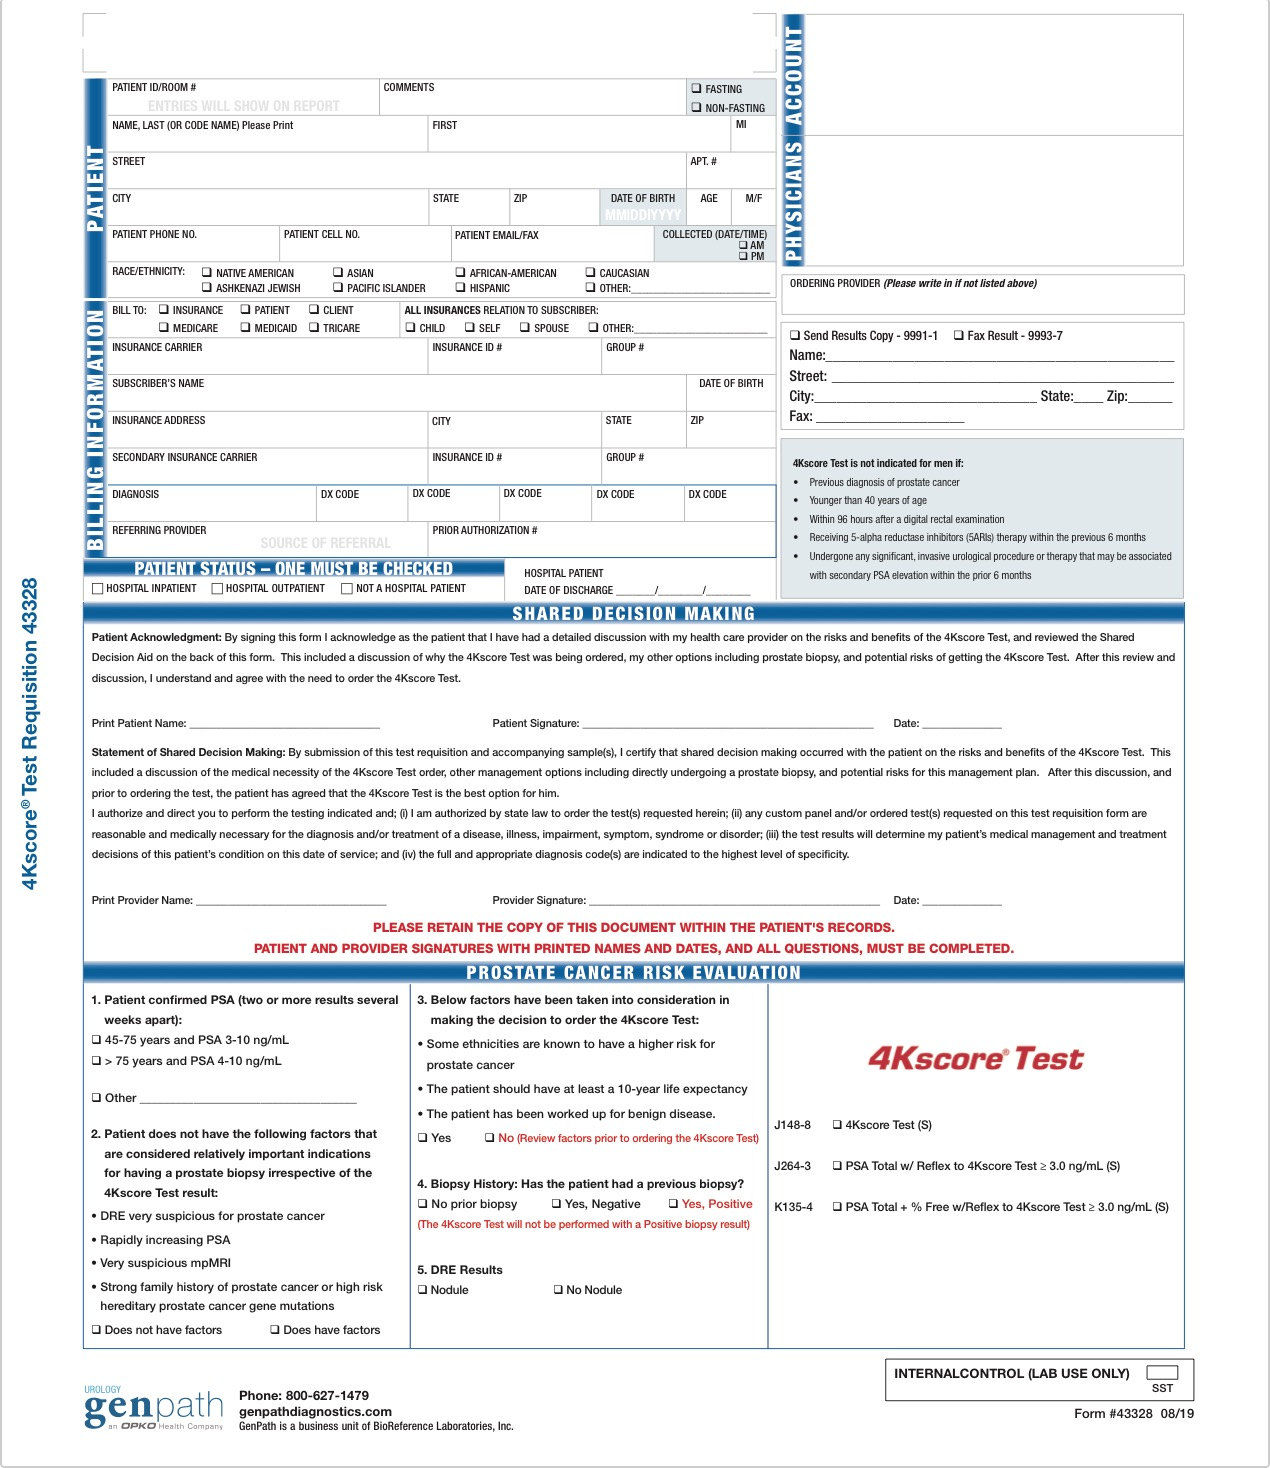 4Kscore Test Requisition Form